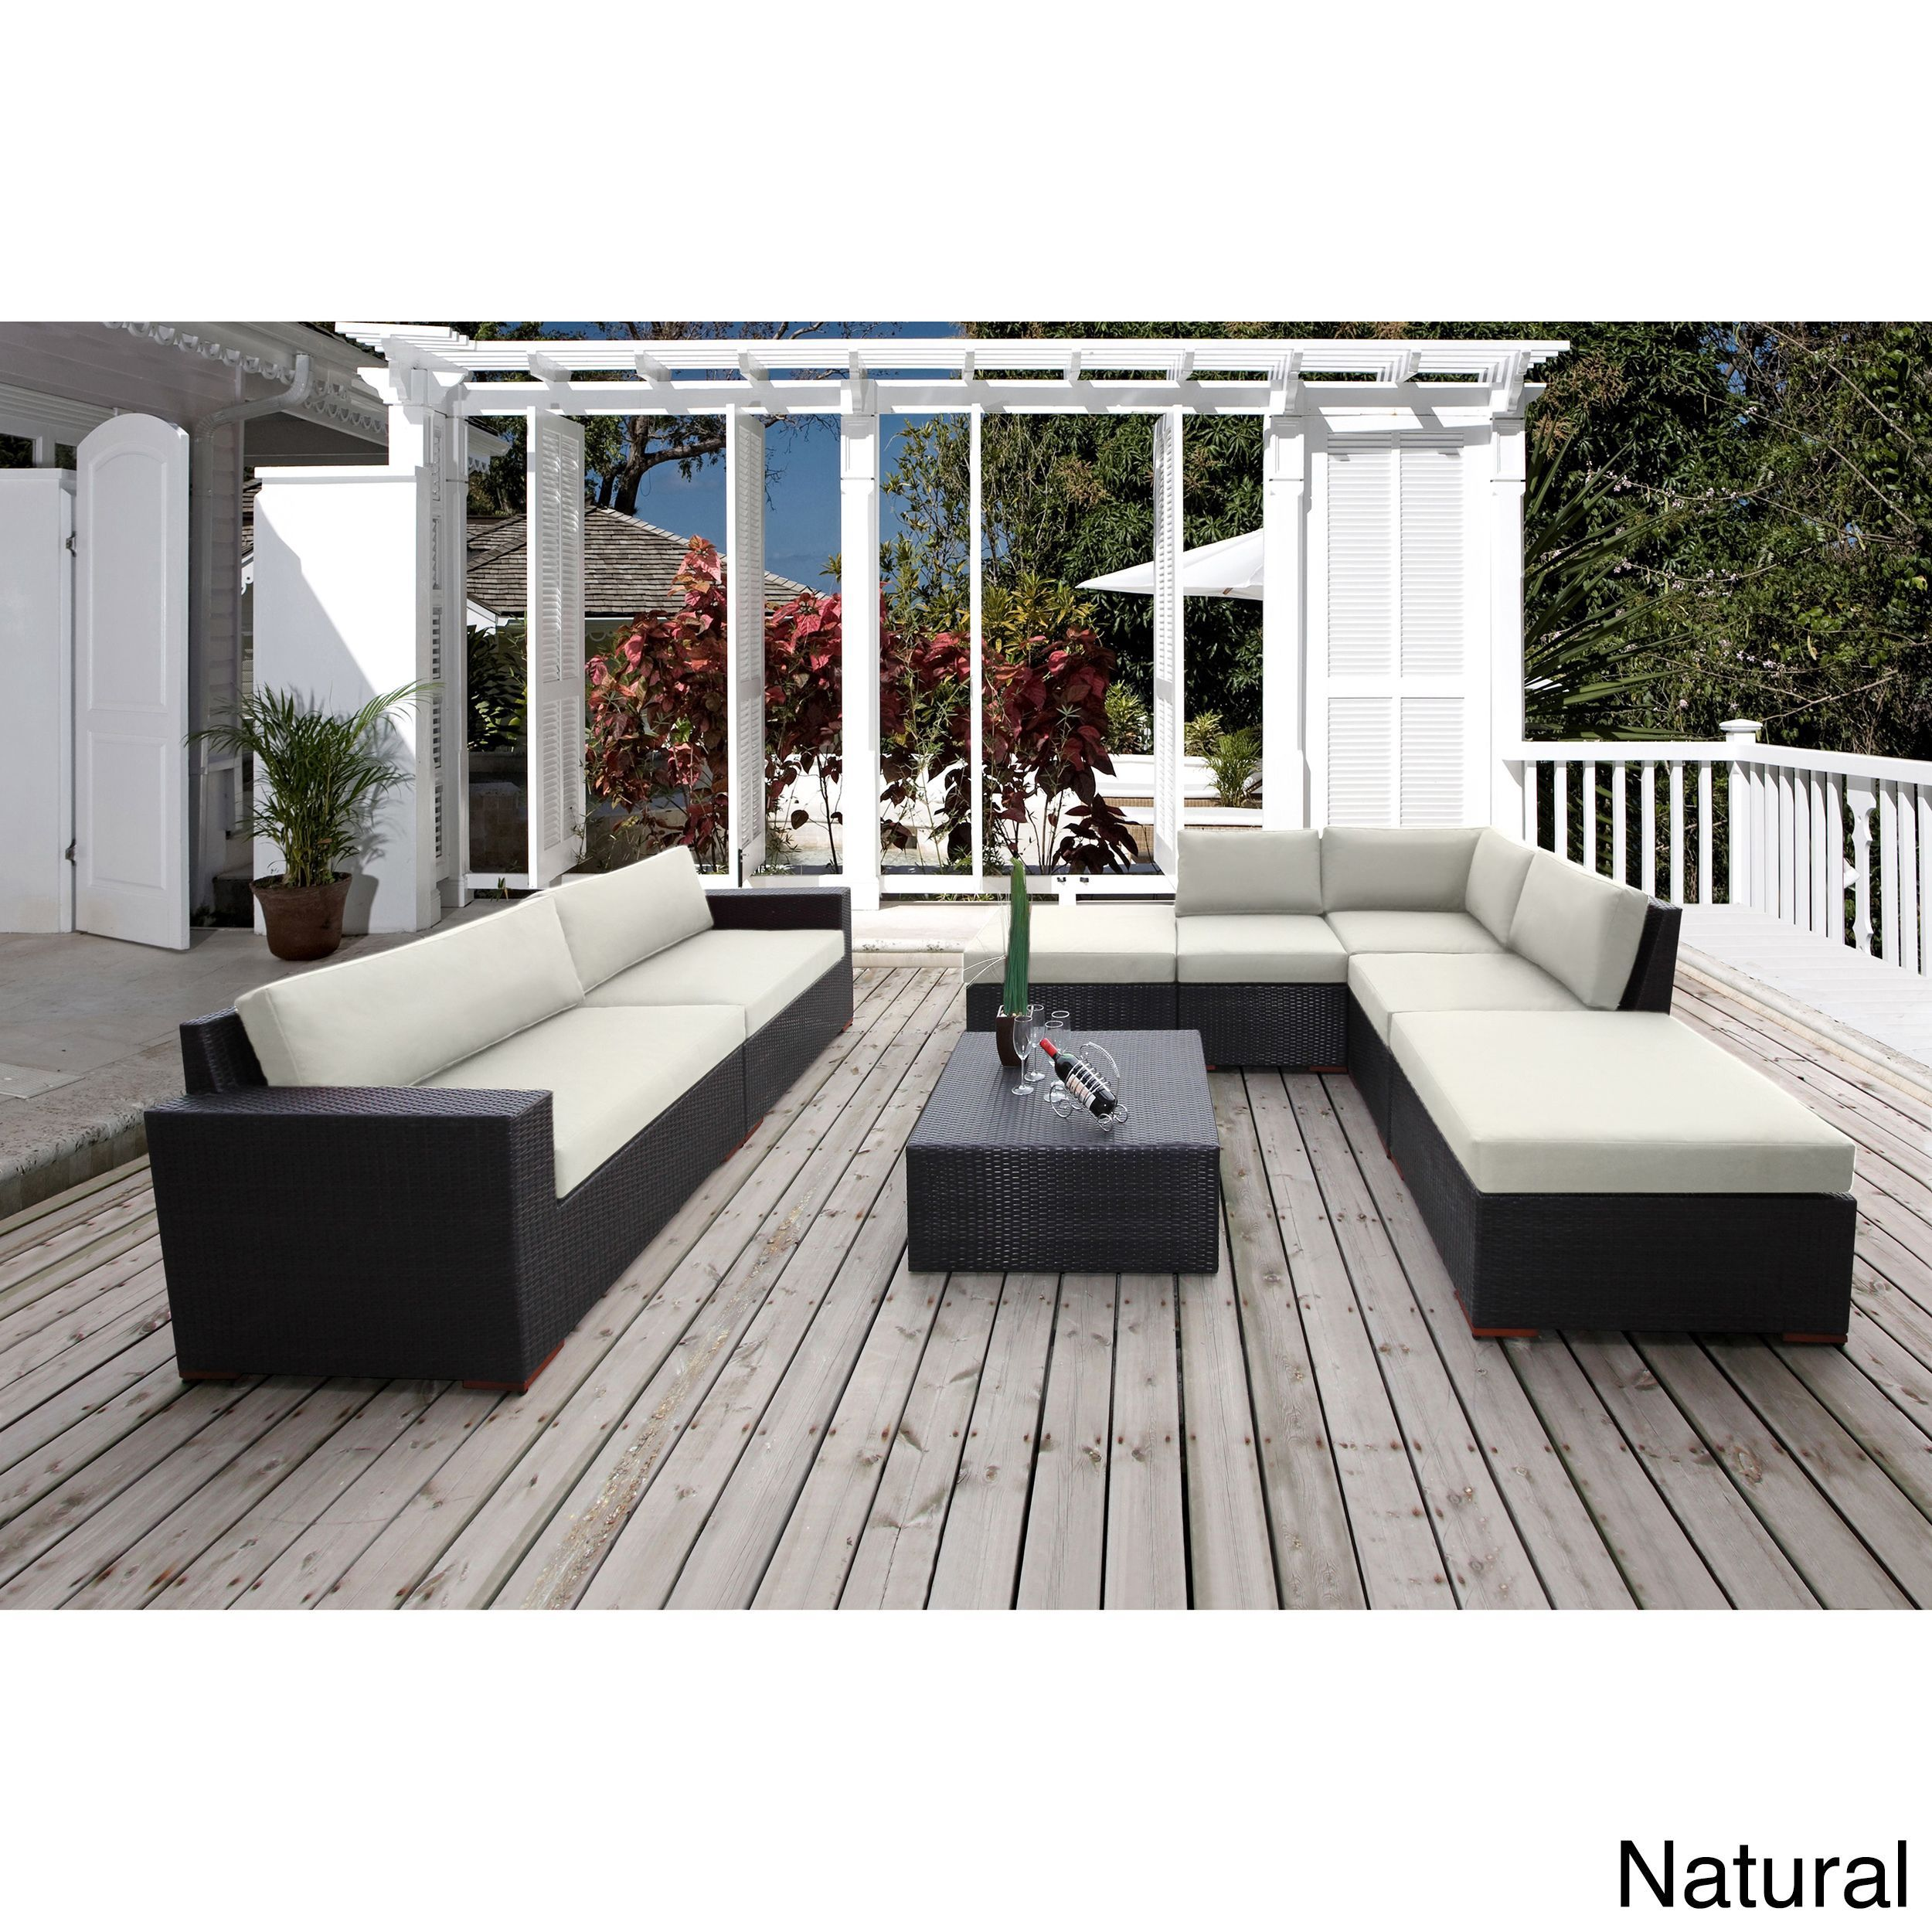 Bellini Andover 8 Piece Sunbrella Fabric Conversation Sectional Seating Canvas Natural